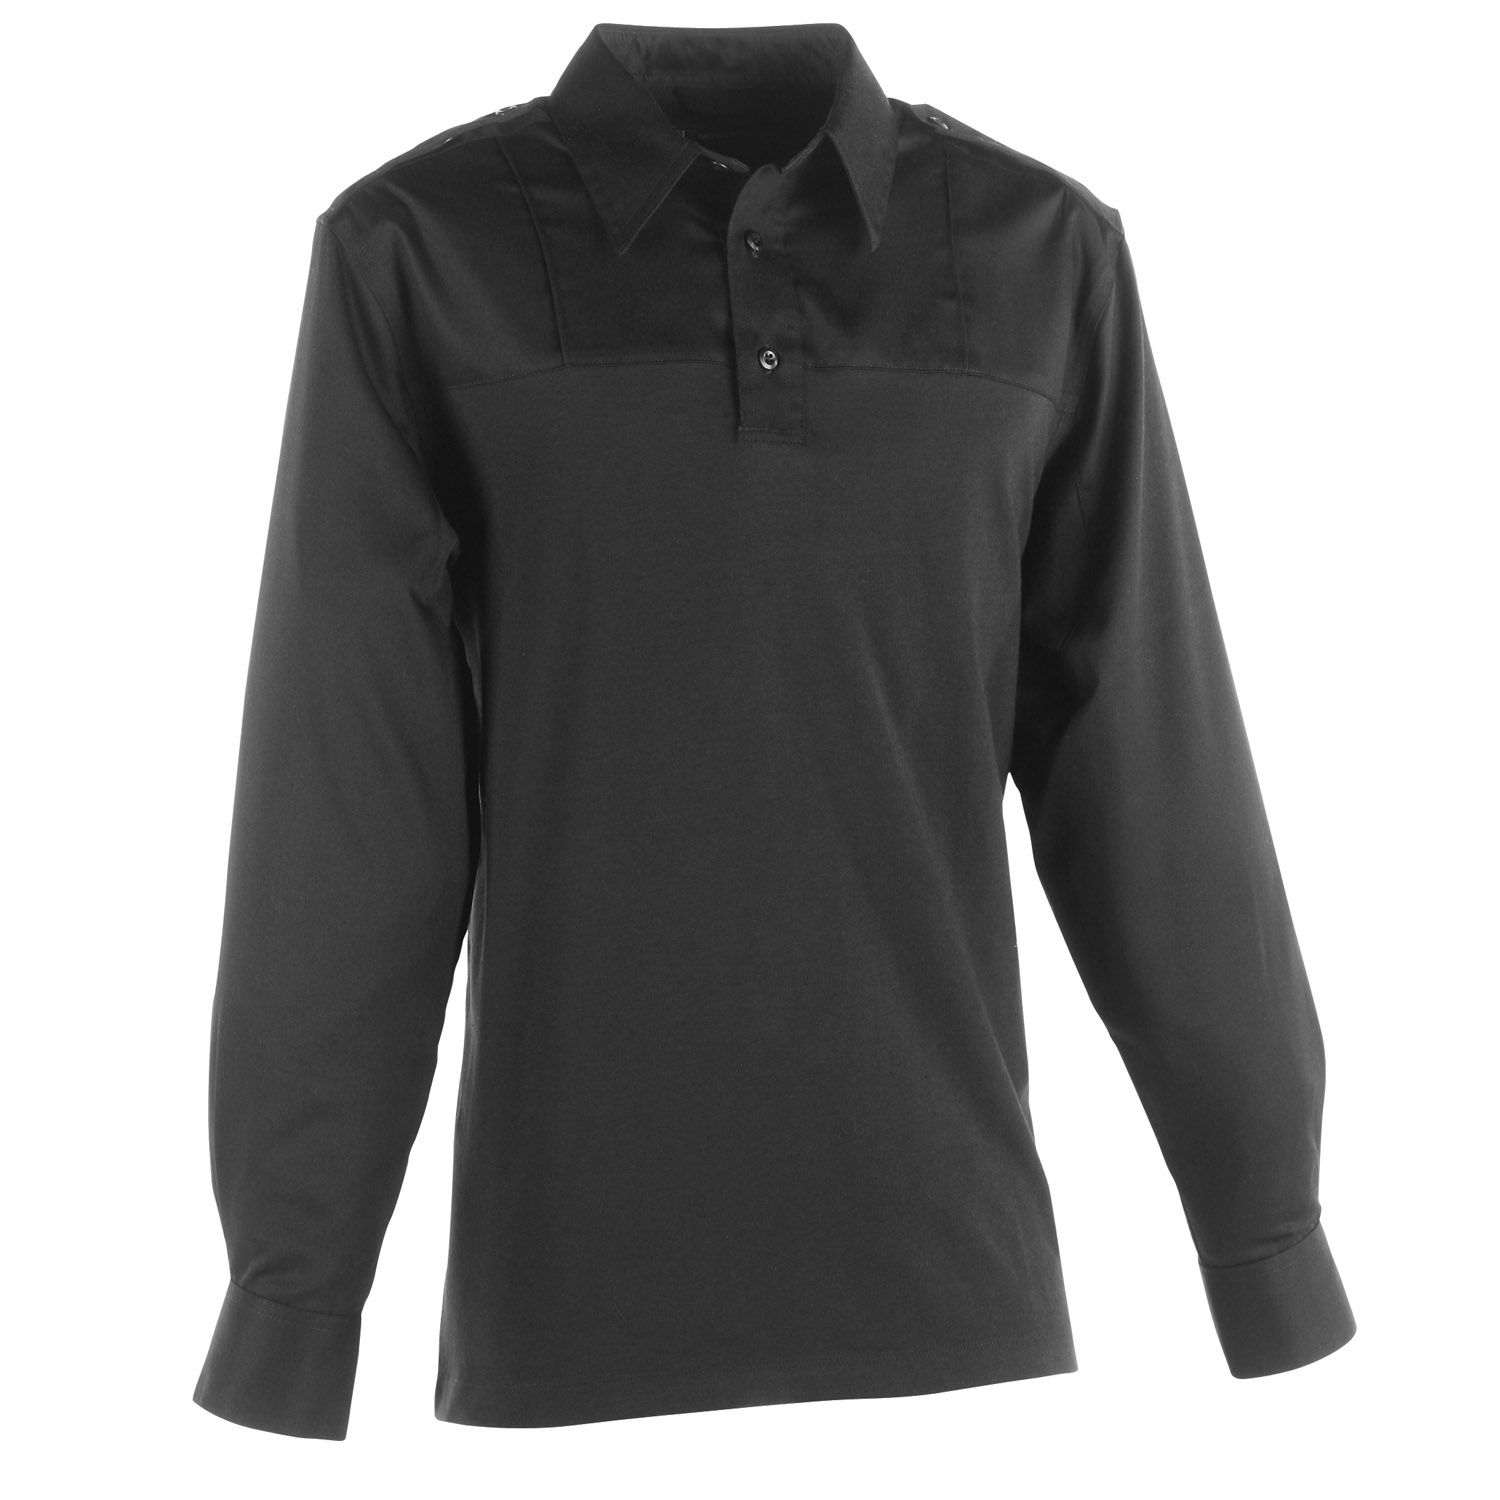 5.11 Tactical Long Sleeve PDU Rapid Shirt